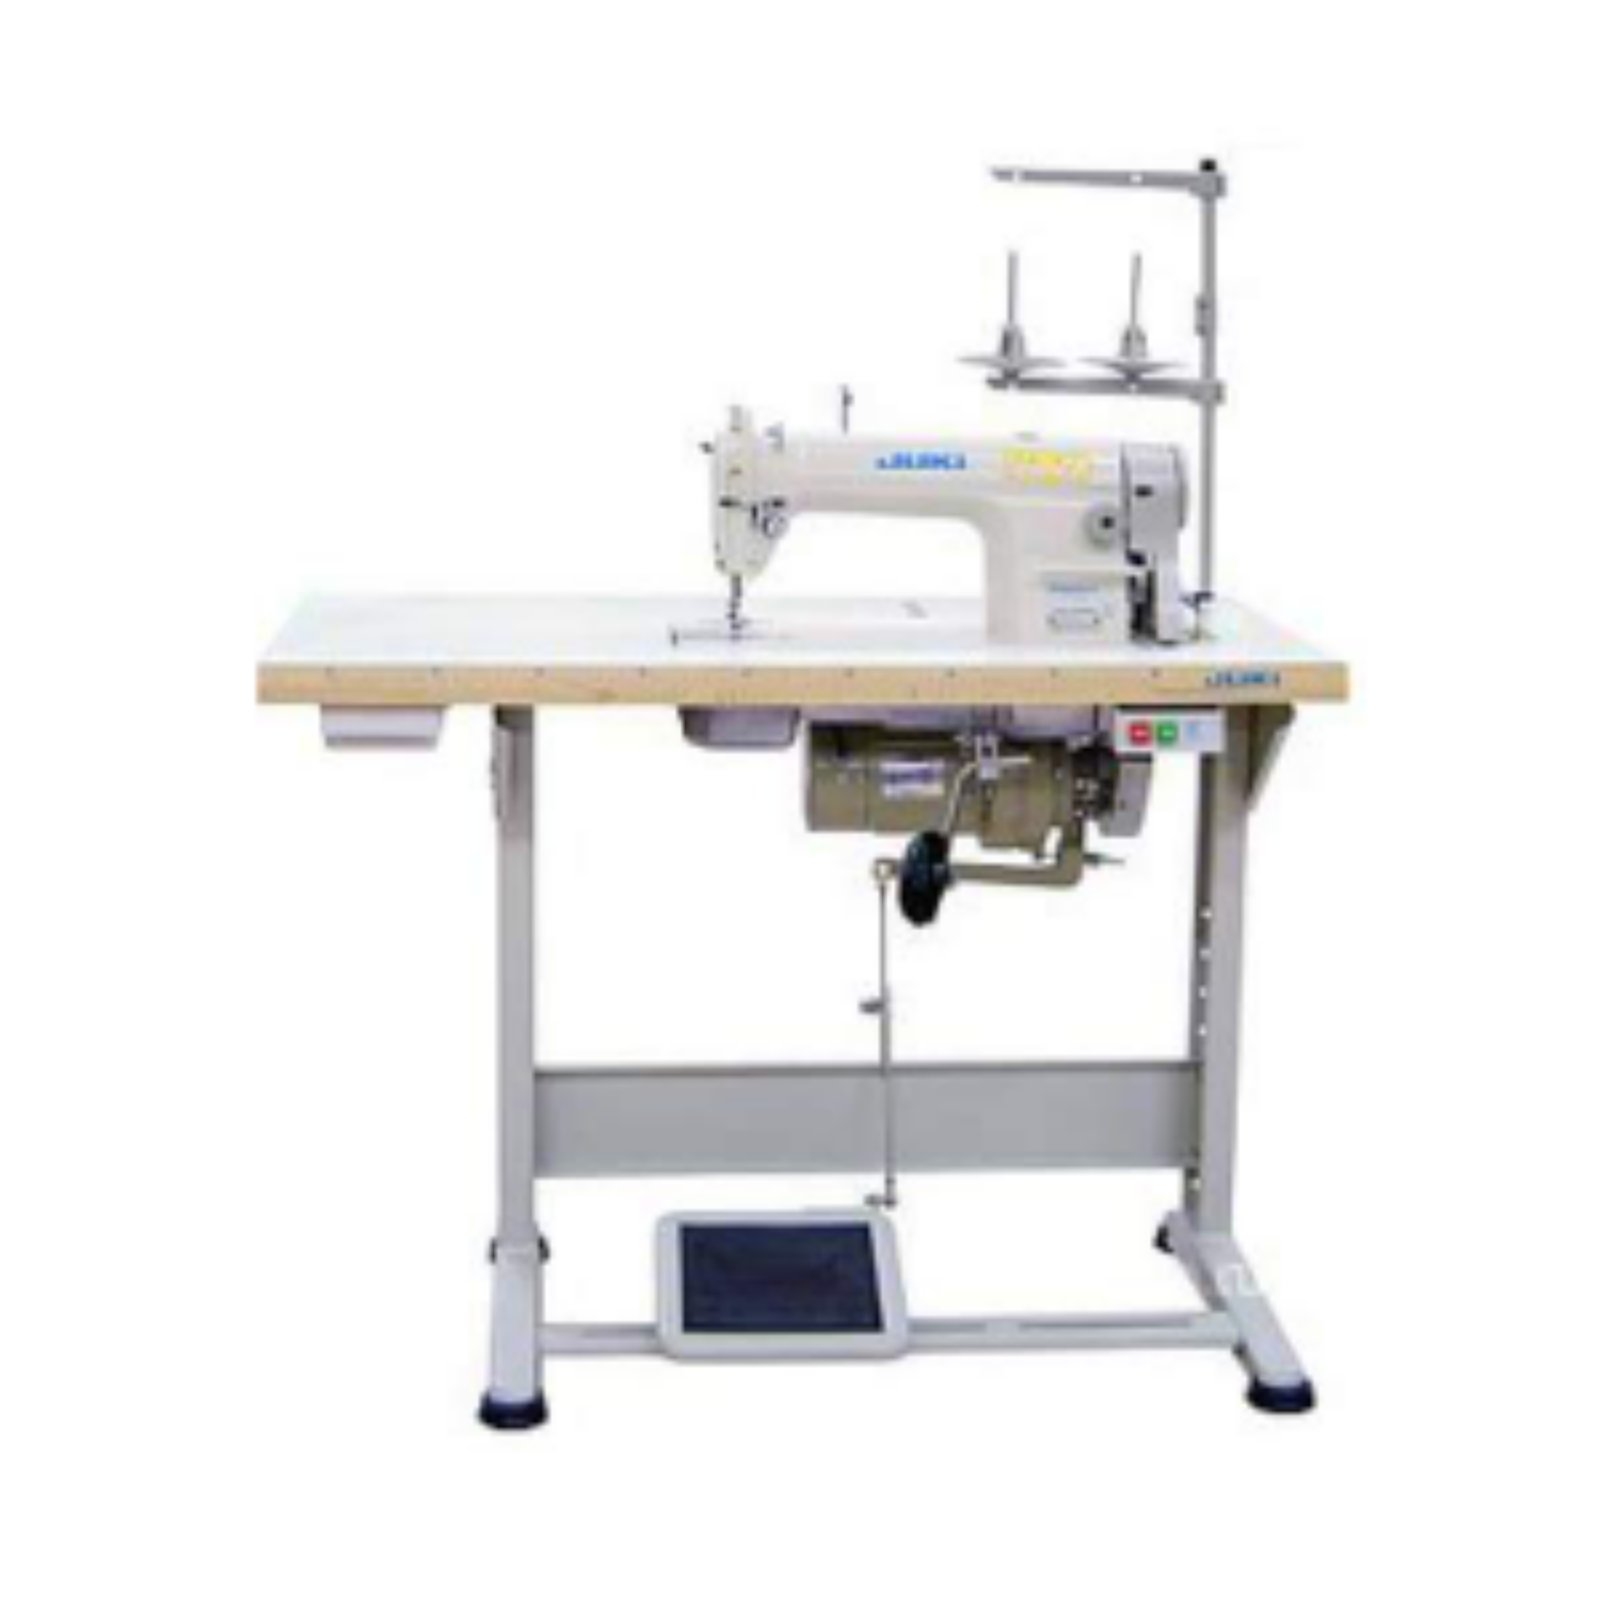 New Juki HinSpeed Sewing Machine